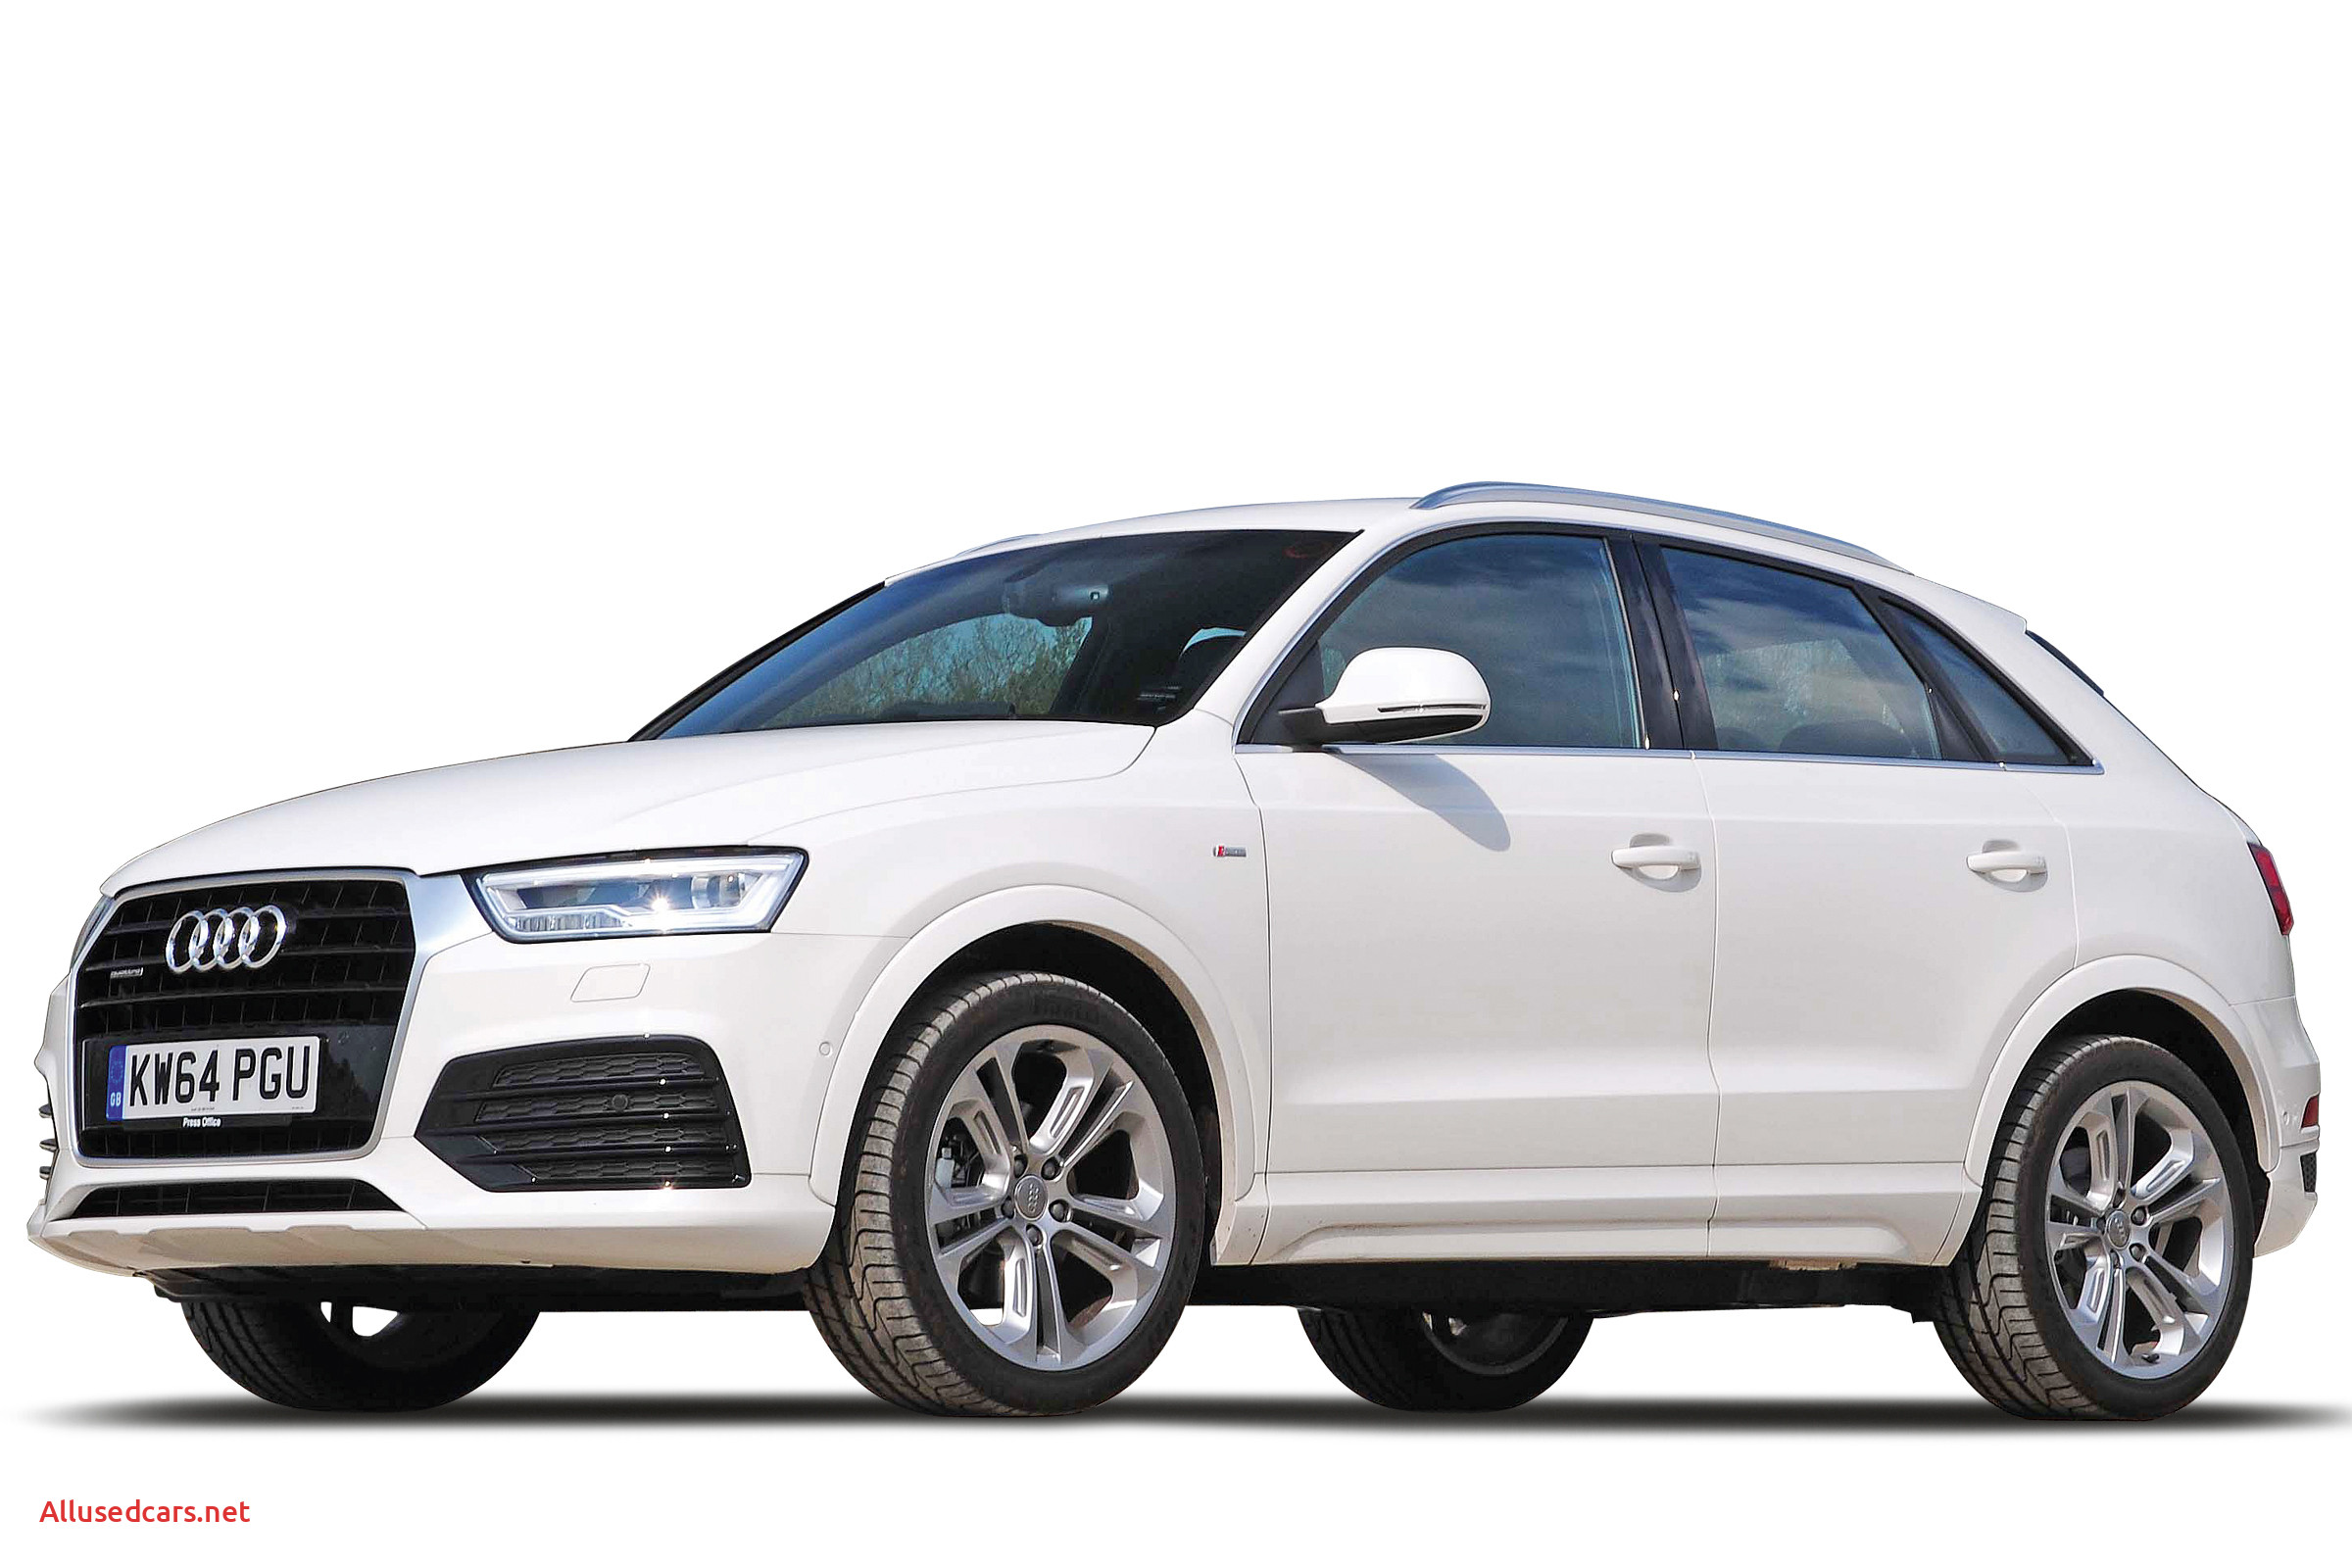 Audi Q3 for Sale Awesome Audi Q3 Suv 2011 2018 Review